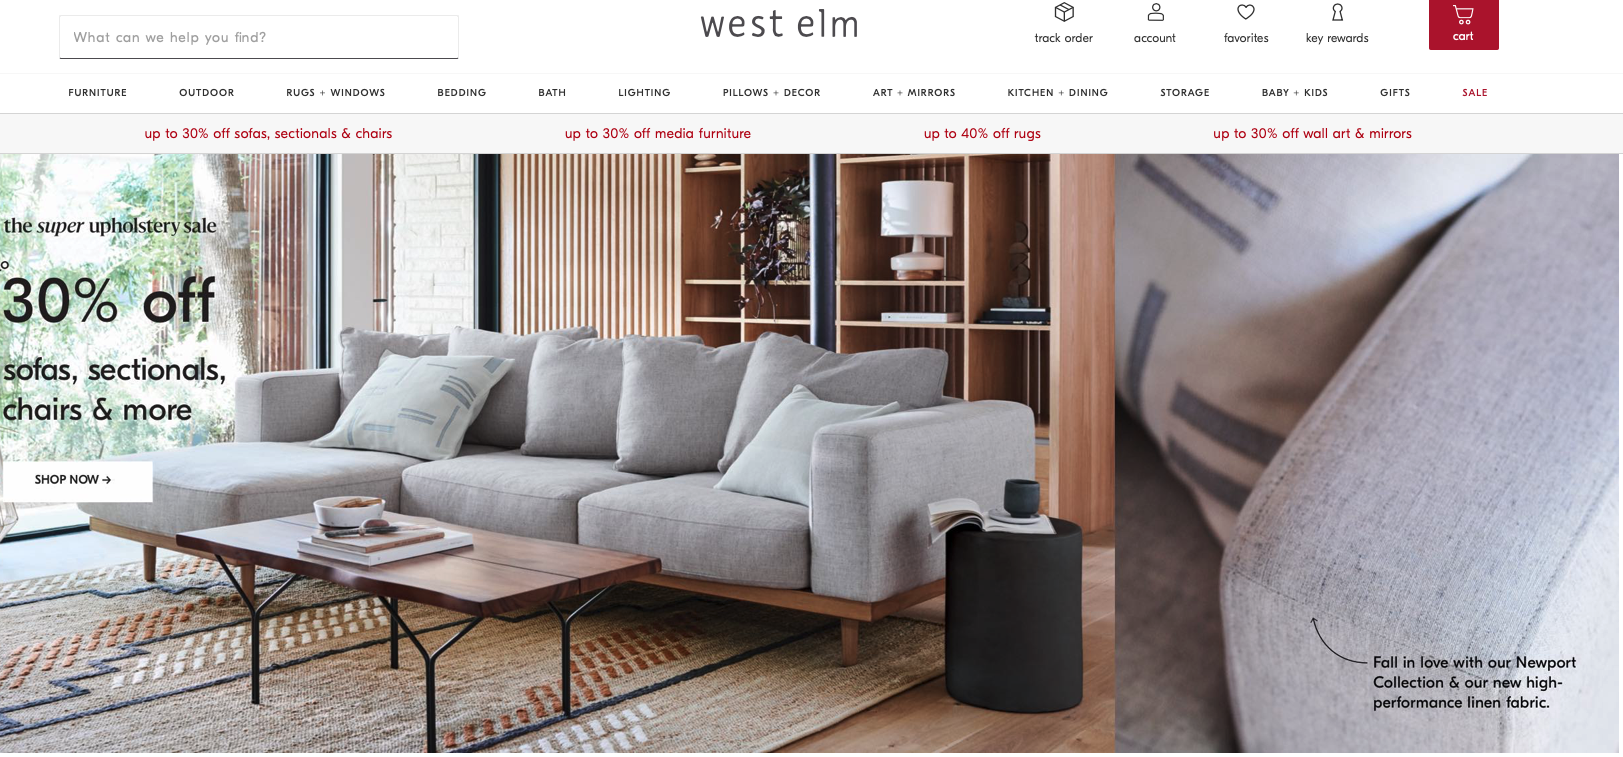 Screen Shot 2020-02-24 at 3.45.33 PM